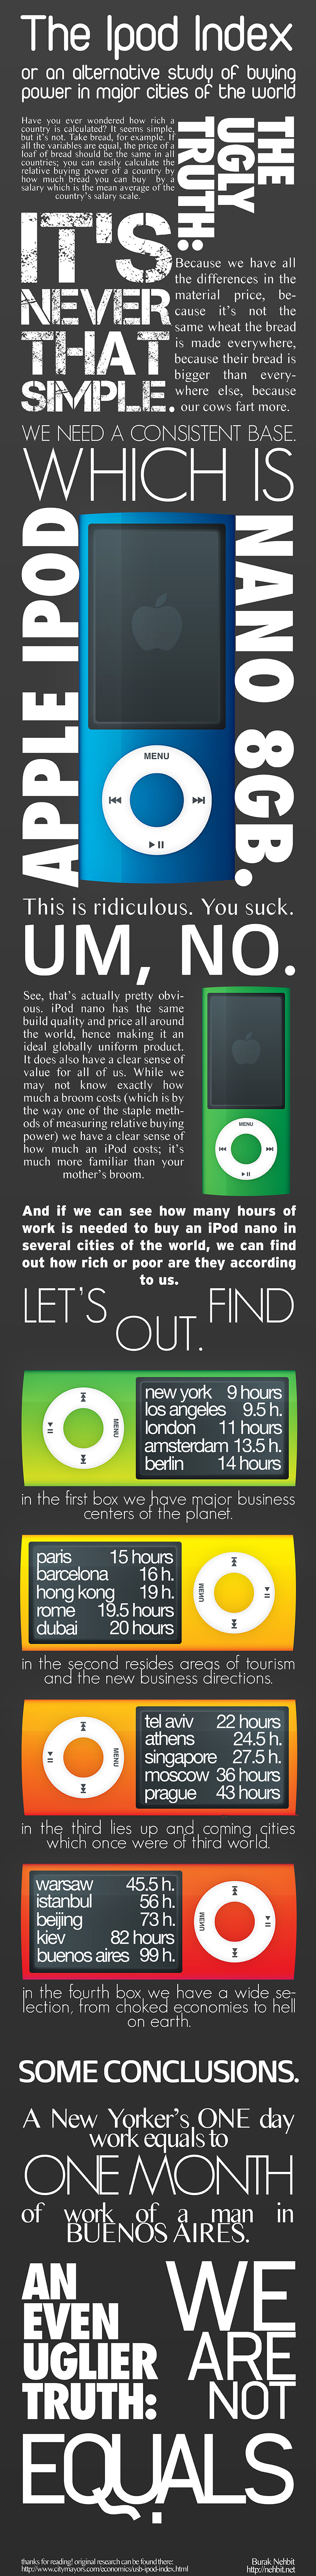 The iPod Index Infographic